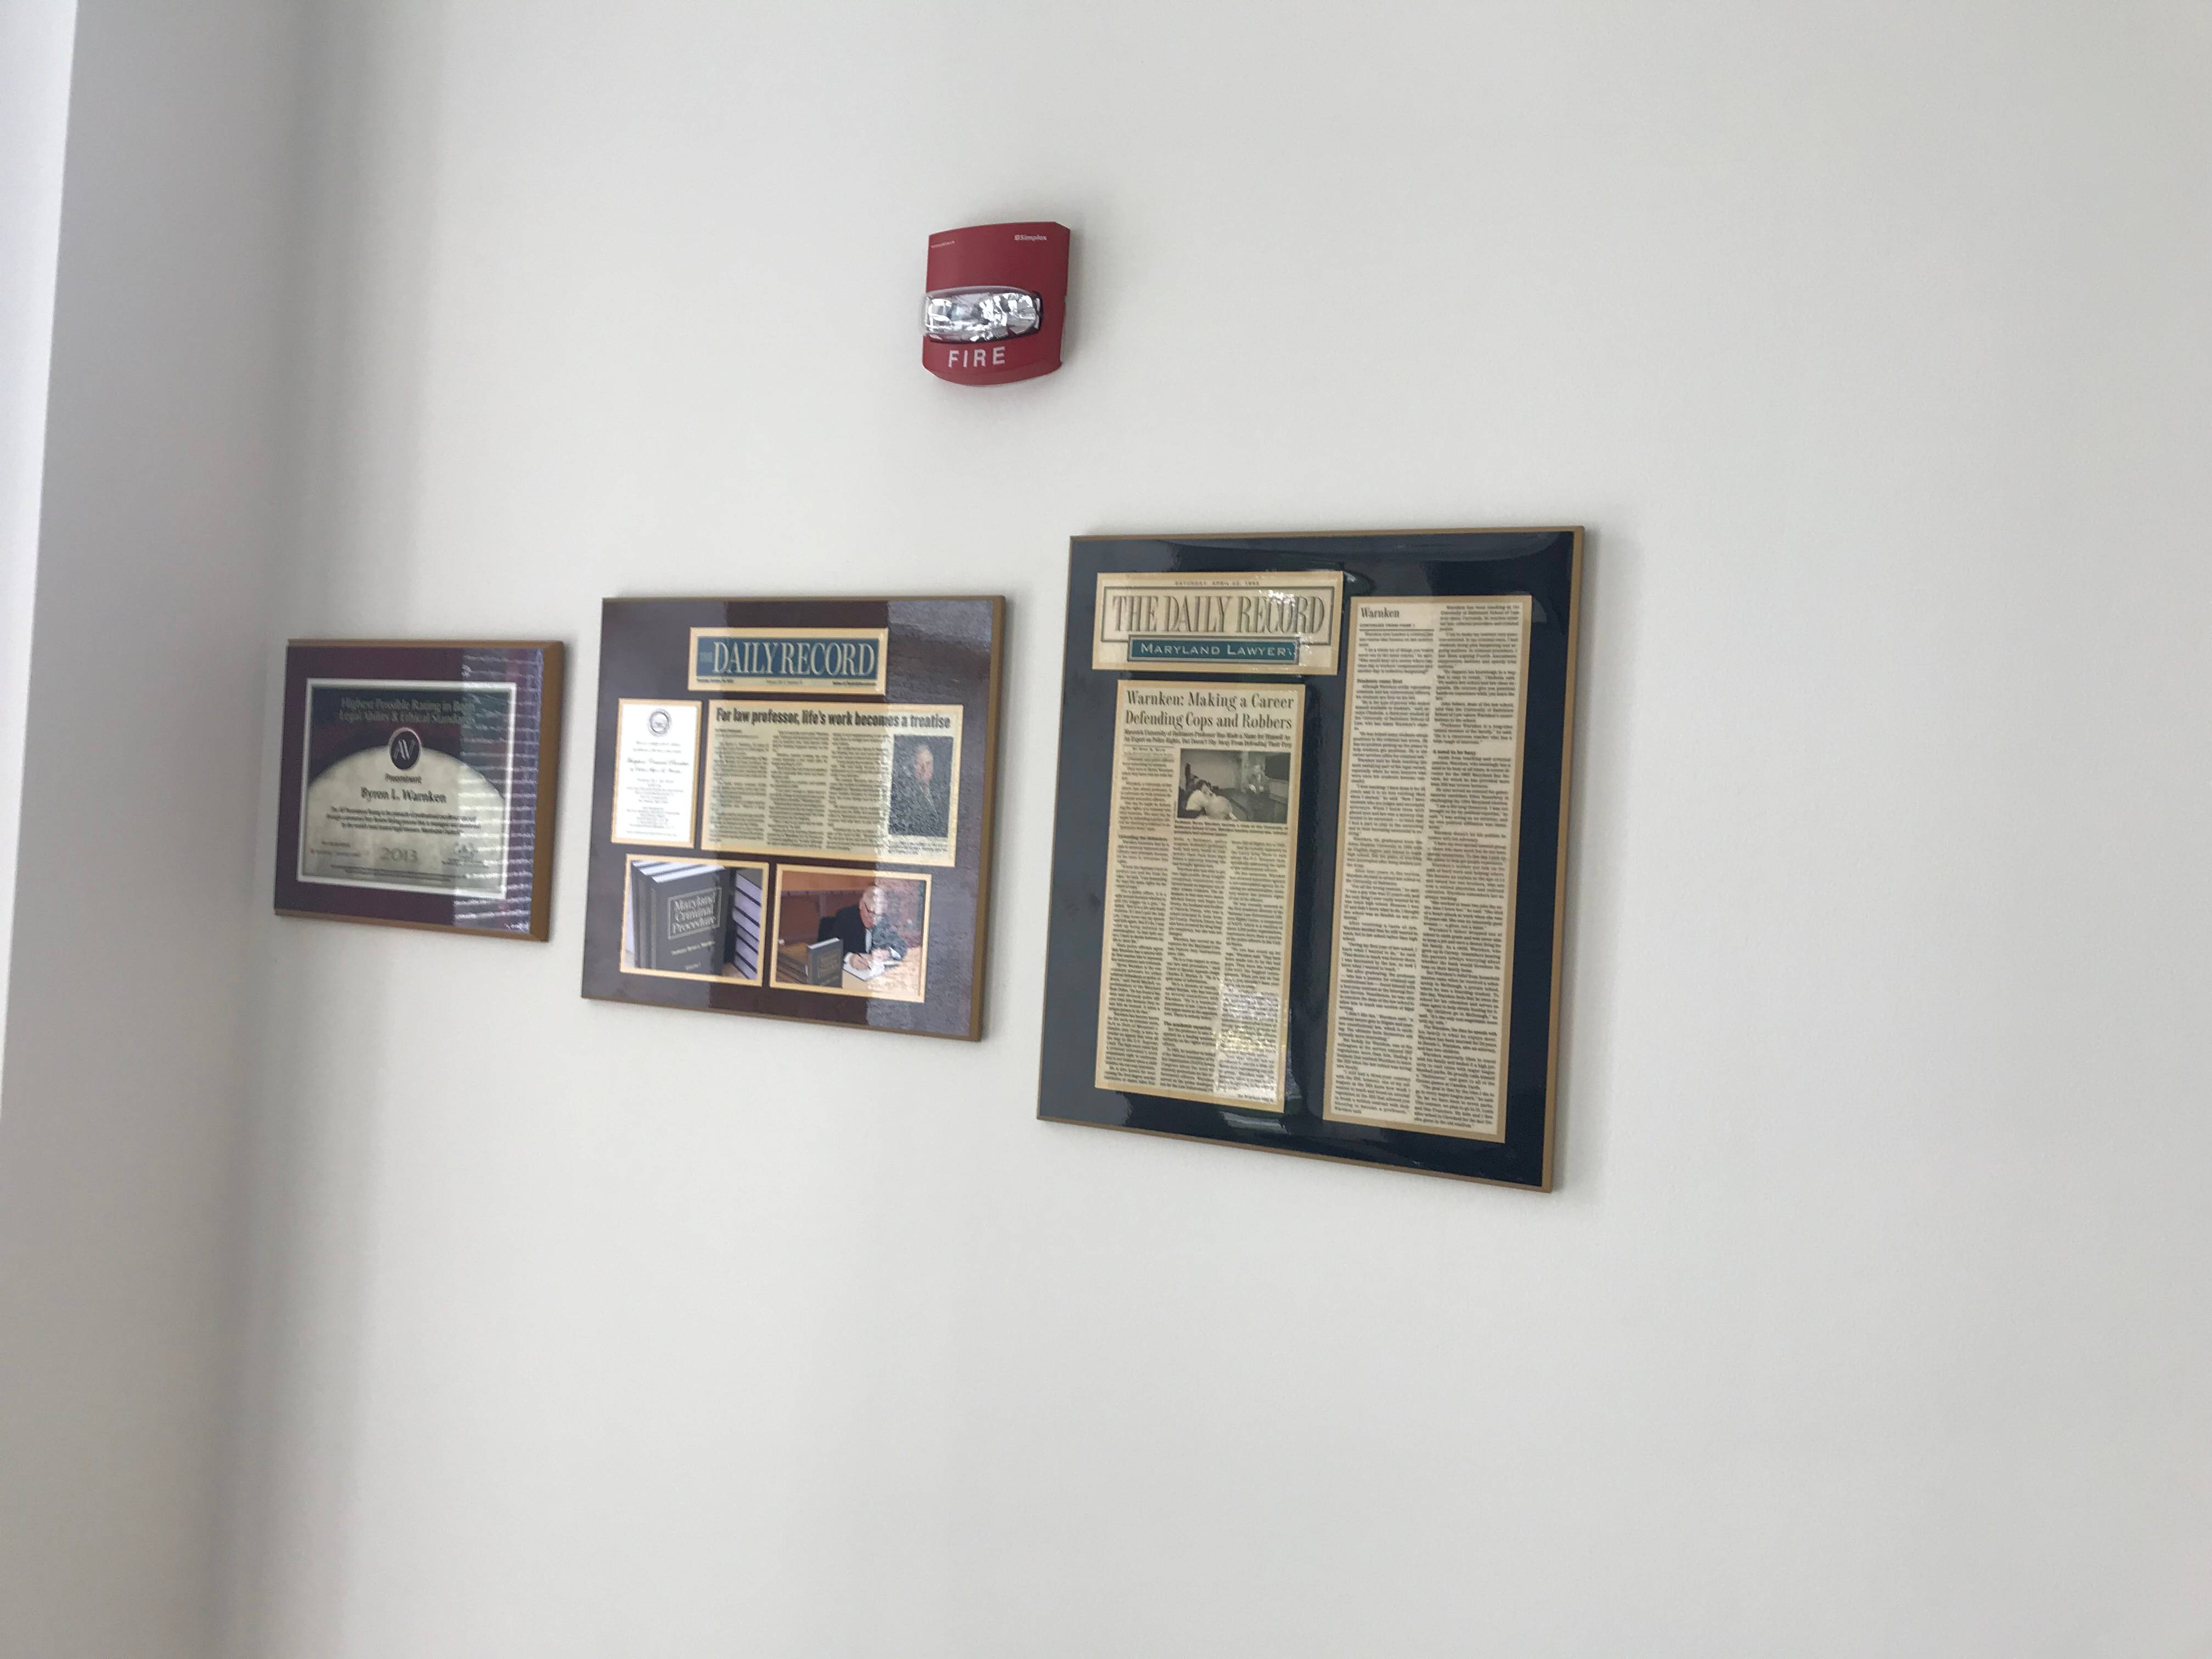 Picture hanging installation in lusby MD